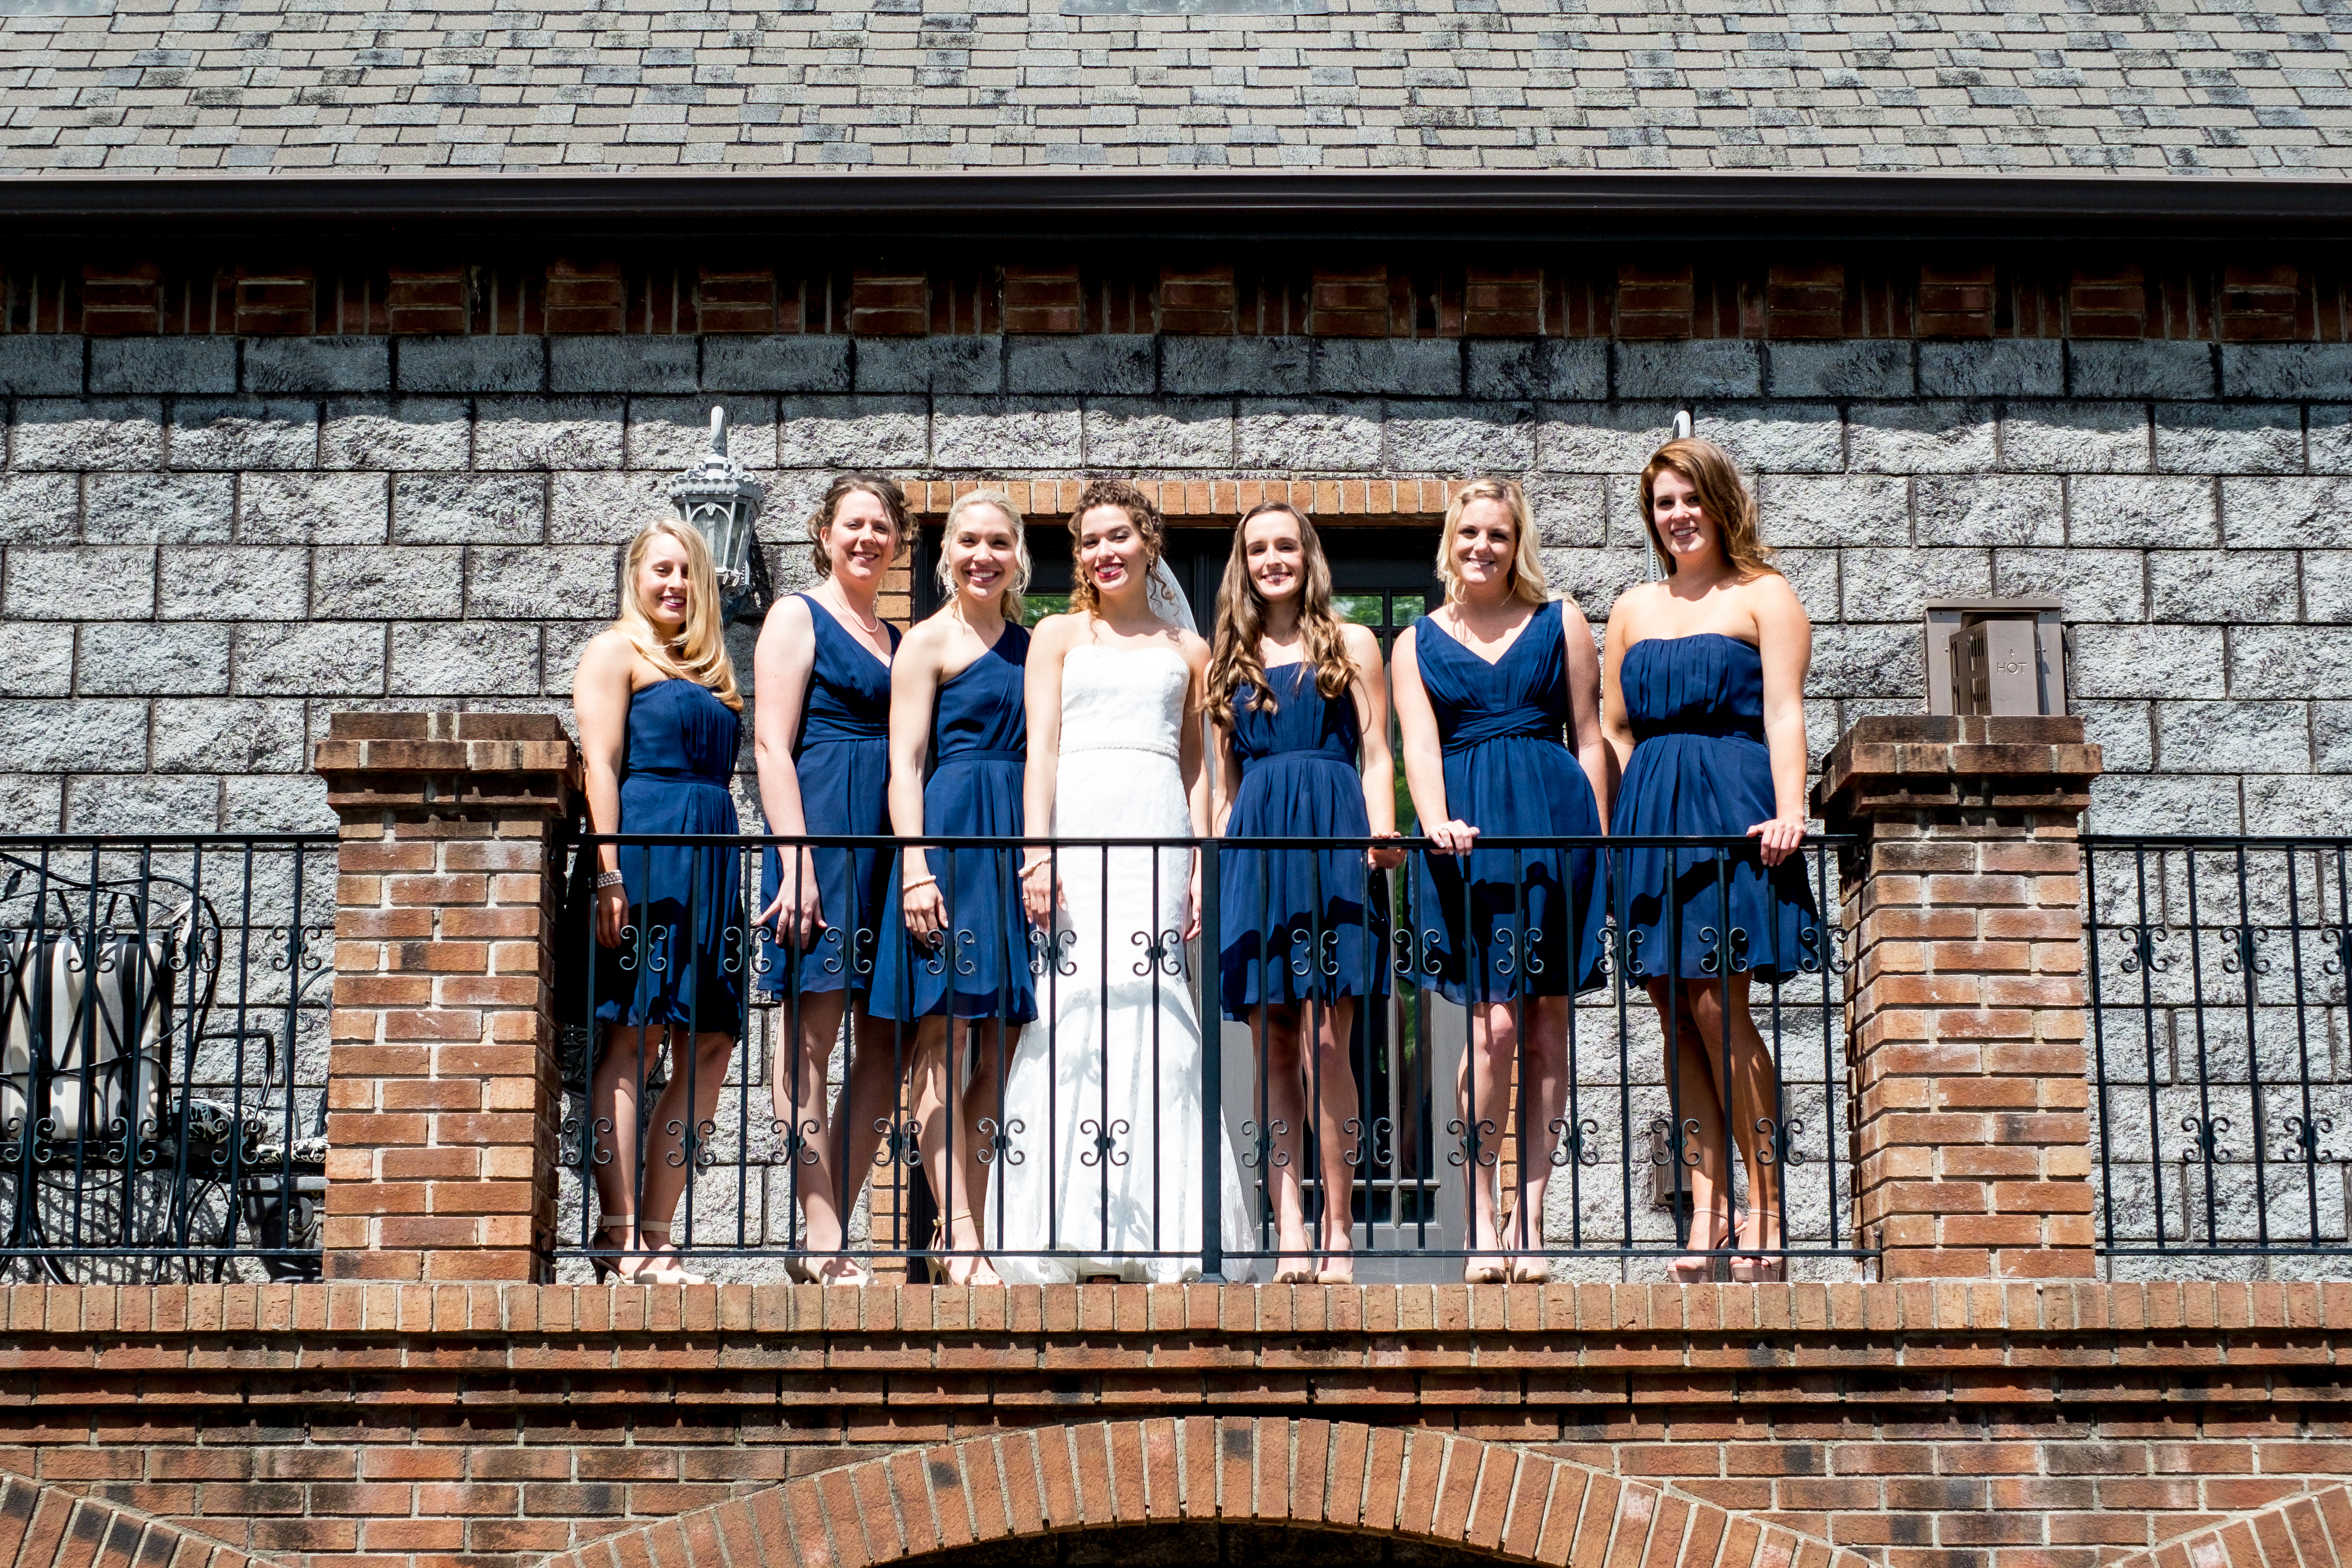 A bride, surrounded by her bridesmaids, standing on a balcony. Photo taken by Pait Photography, at a wedding at Barclay Villa, in Angier, NC.